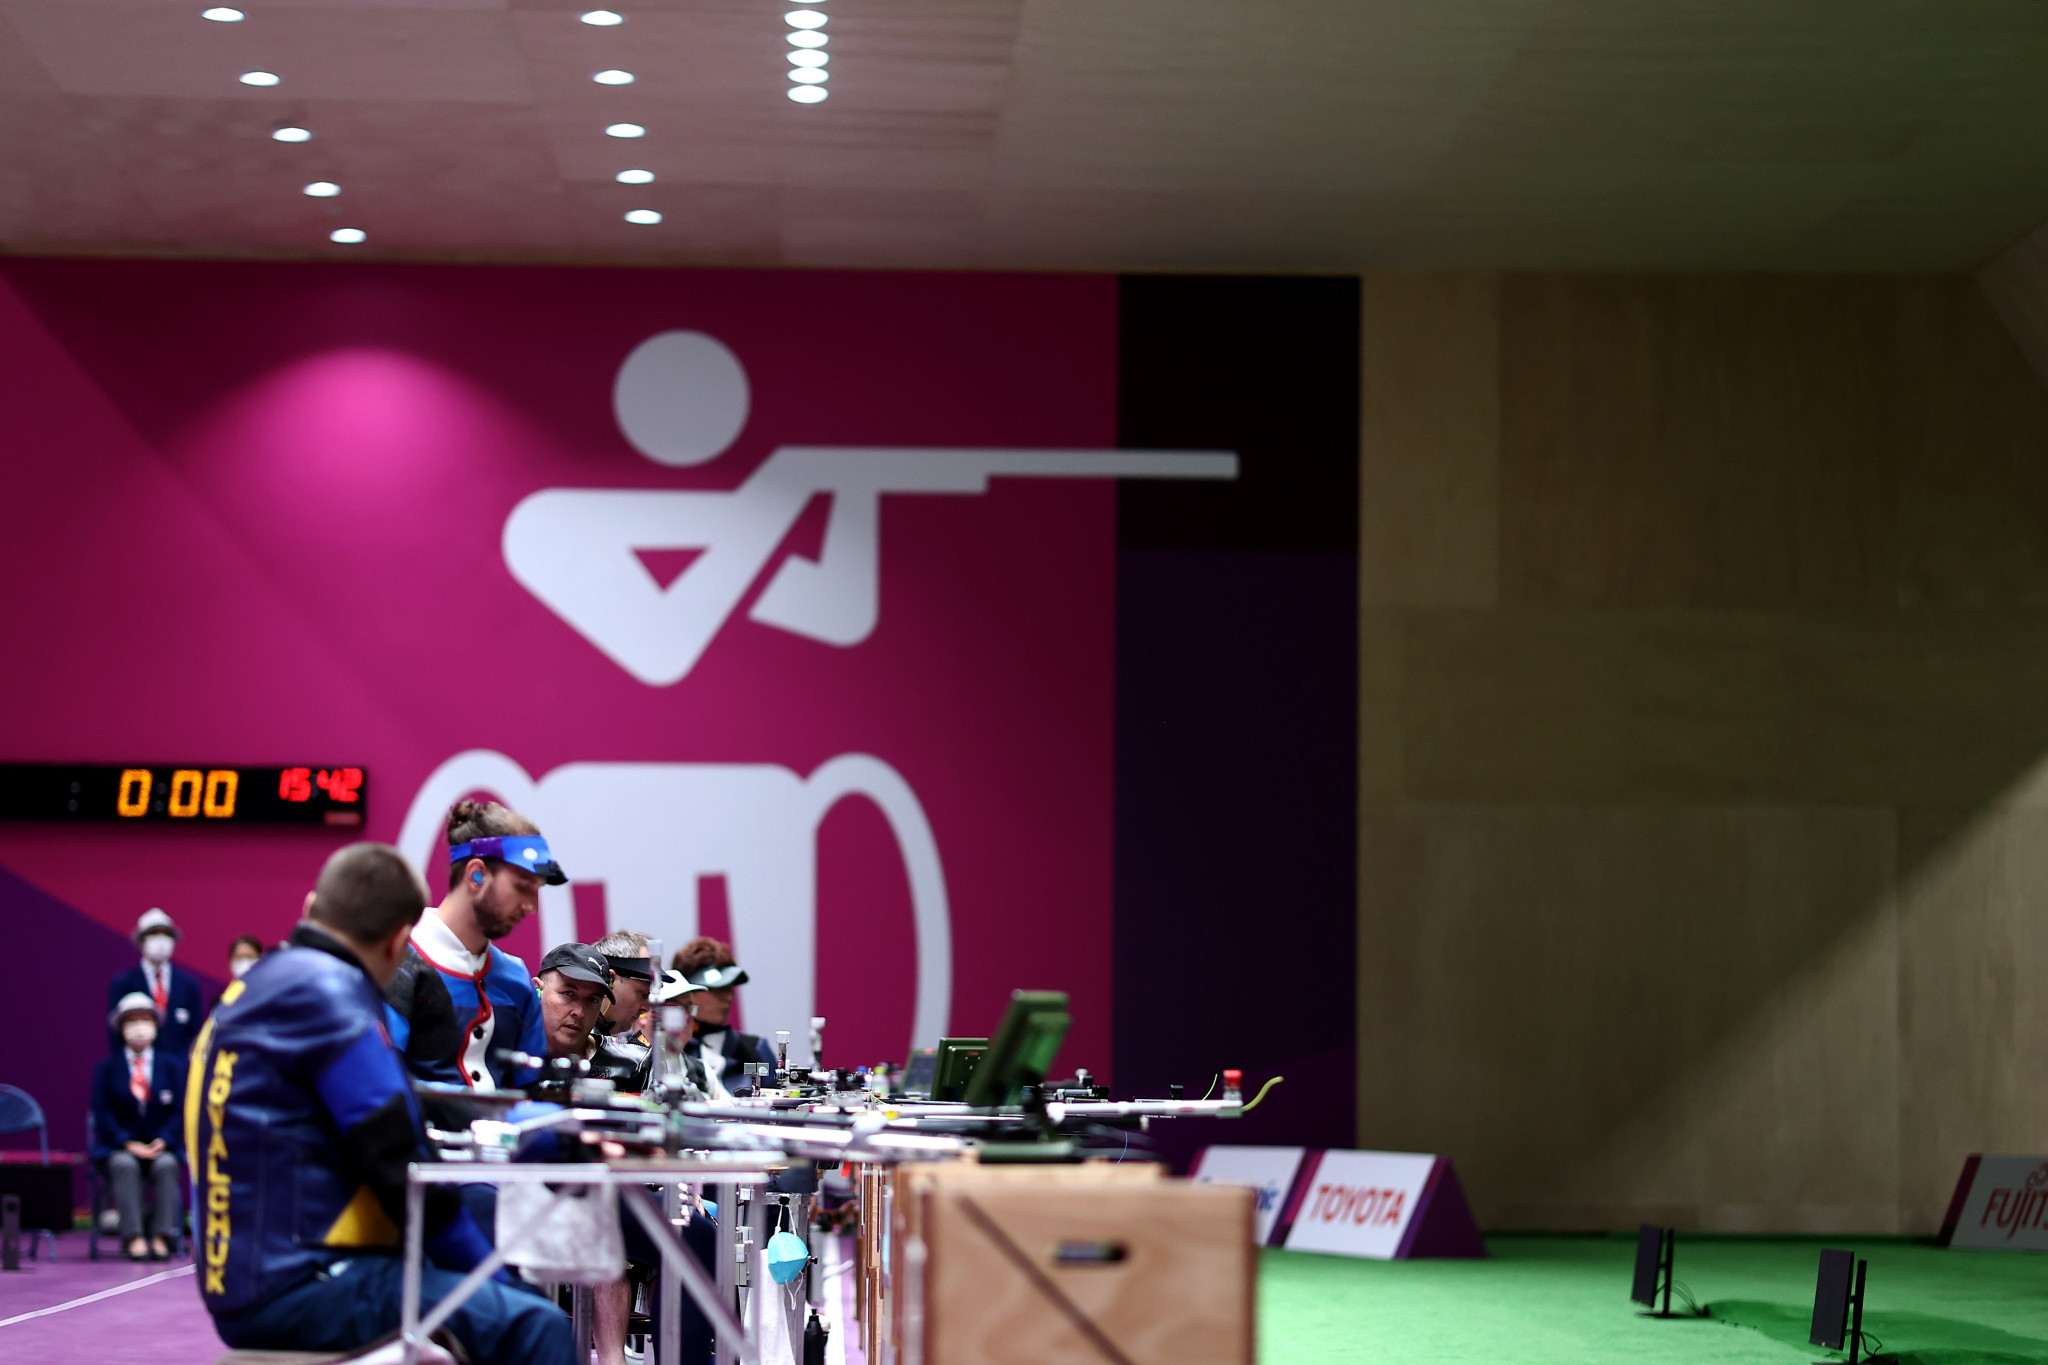 Ristić claims second shooting gold at Tokyo 2020 Paralympics with world record